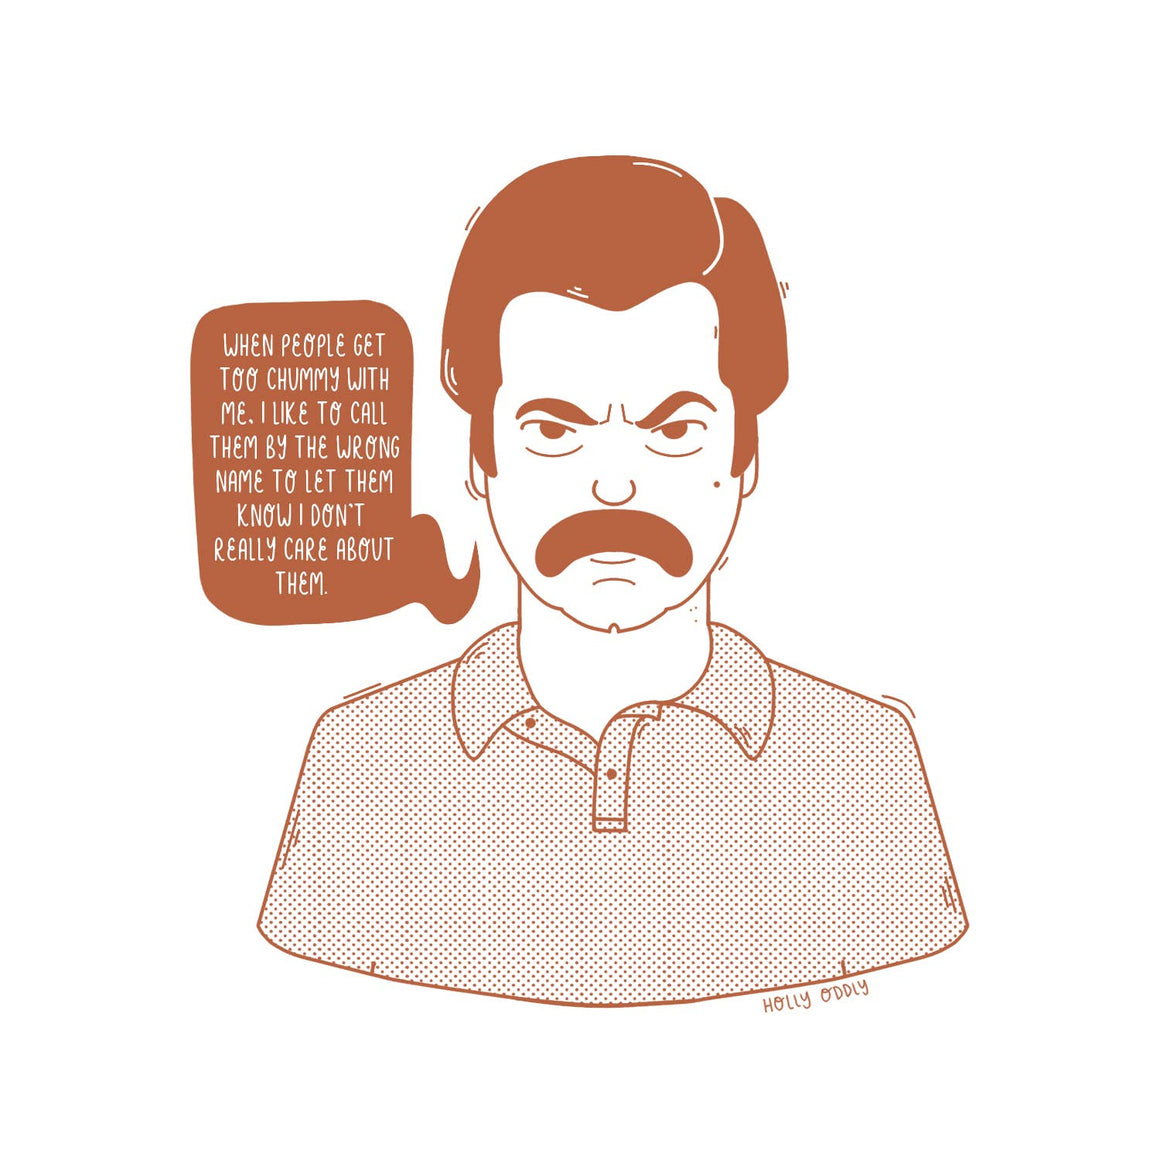 Holly Oddly: 4x4 Print, Ron Swanson, Parks and Rec